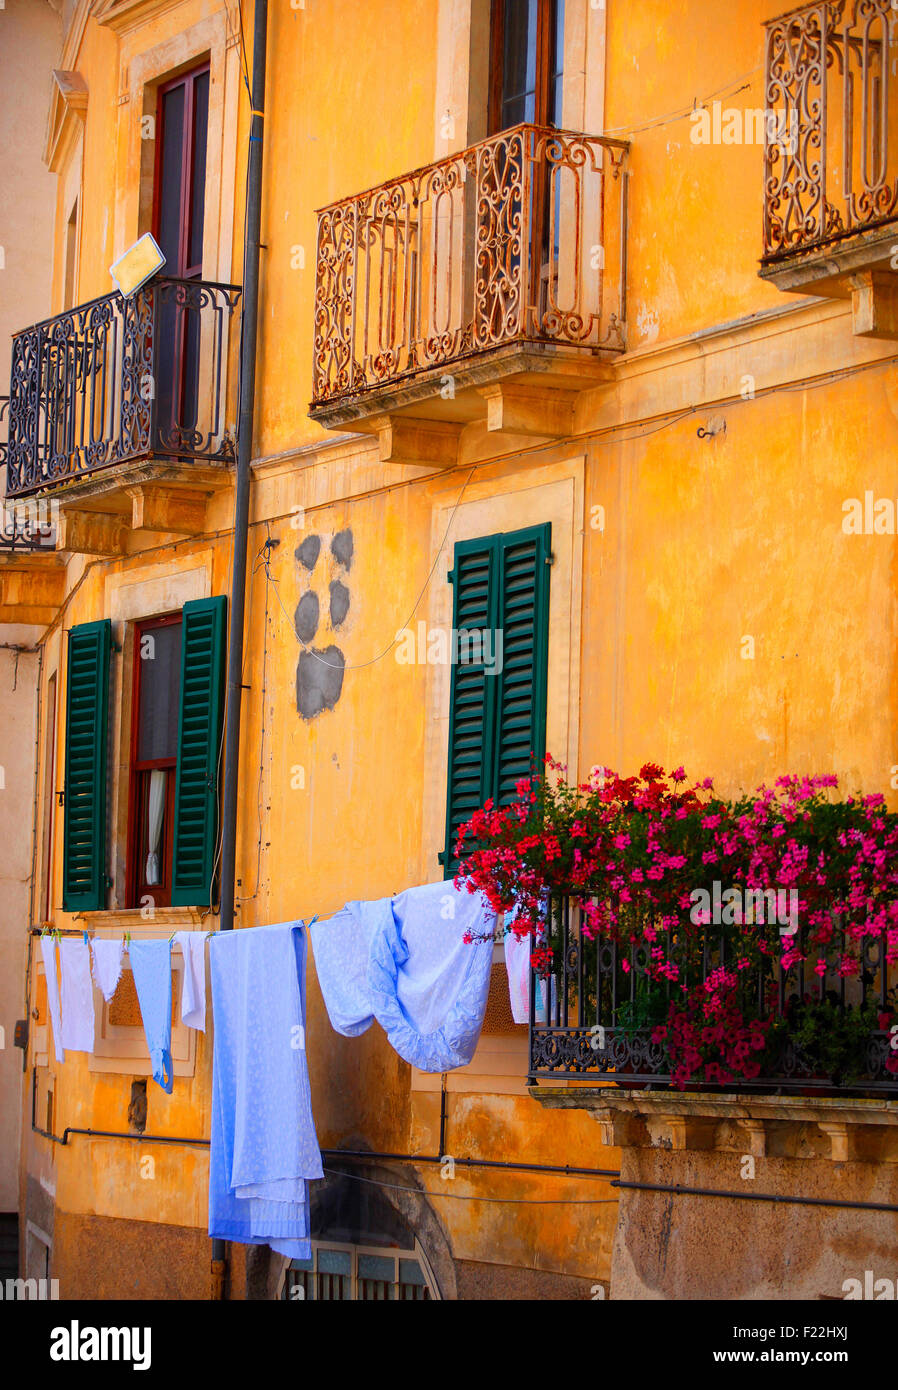 Fontecchio, Italy. Shutters and balcony with hanging washing. - Stock Image